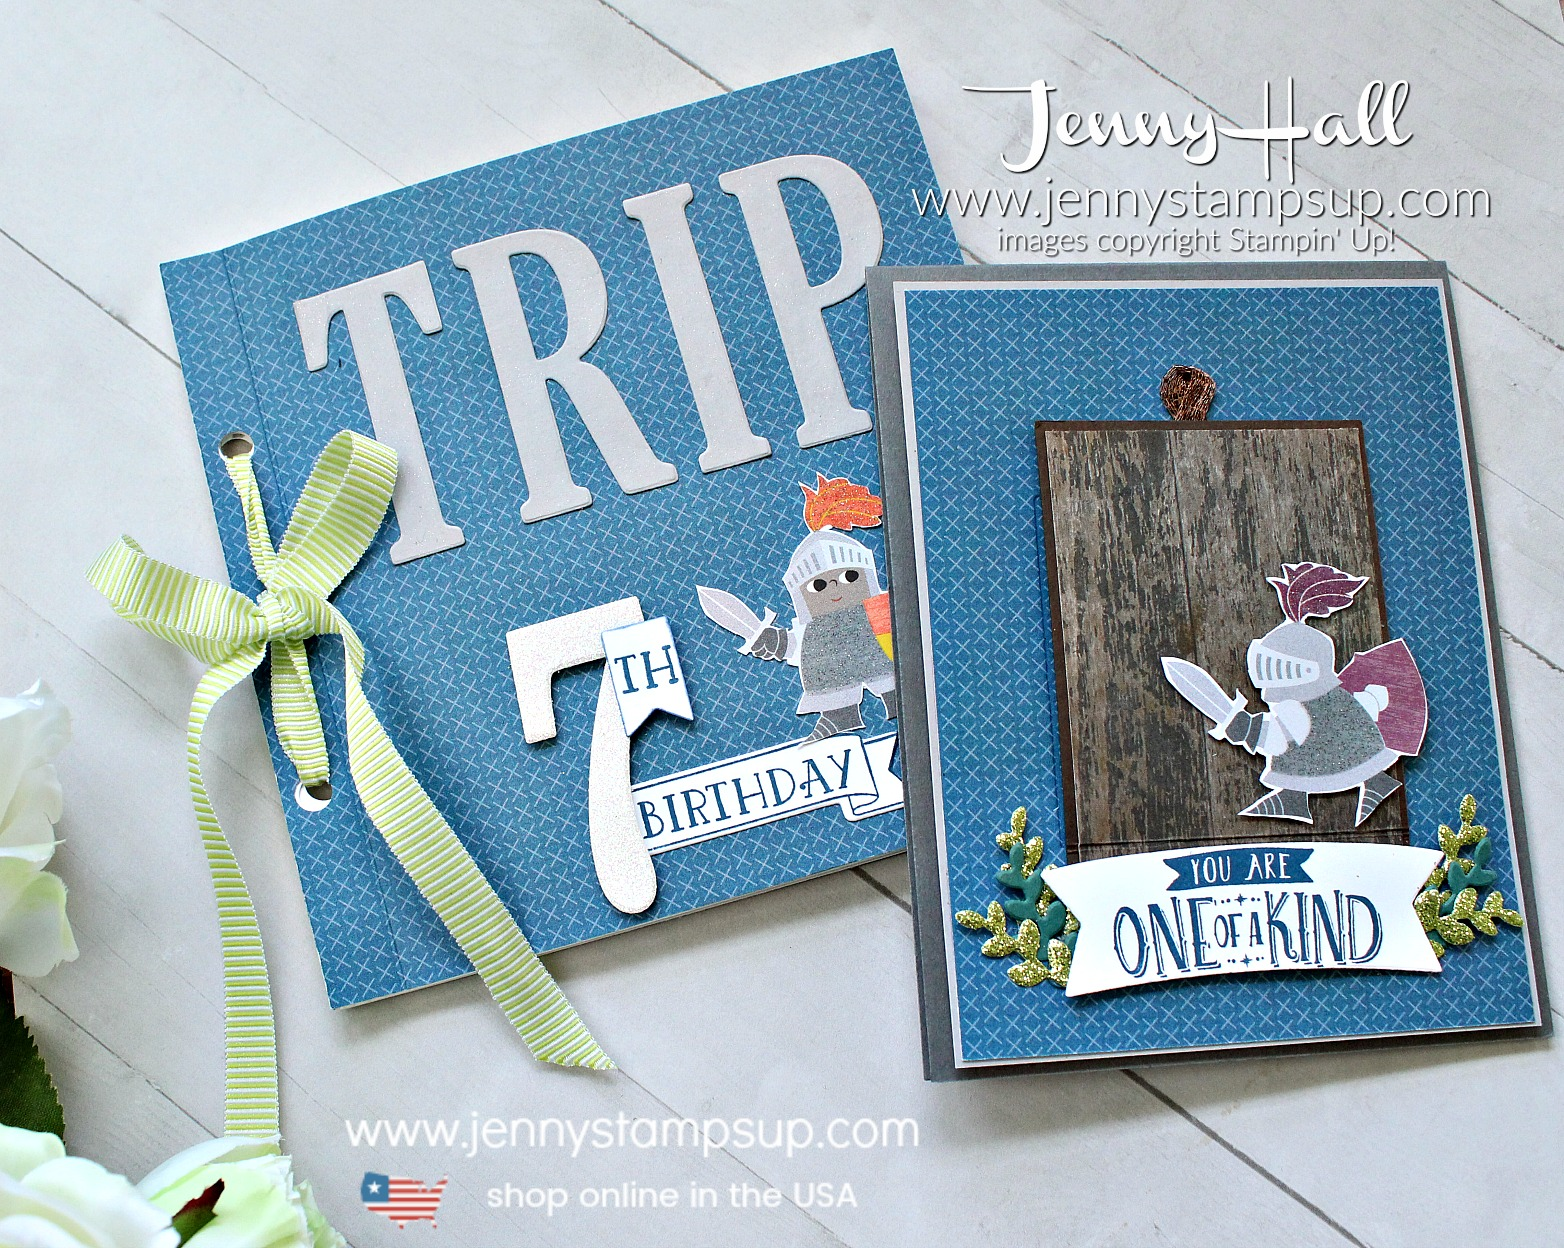 February Stampin Friends Blog Hop project with Magical Day interractive card and mini album created by Jenny Hall #minialbum #stampinup #interractivecard #magicalday #youngboybirthday #seventhbirthday #miniscrapbook #scrapbooking #mythandmagic #stamping #papercraft #lifestyle #lifestyleblog #youtuber #crafts #dragonthemeparty #birthdaykeepsake